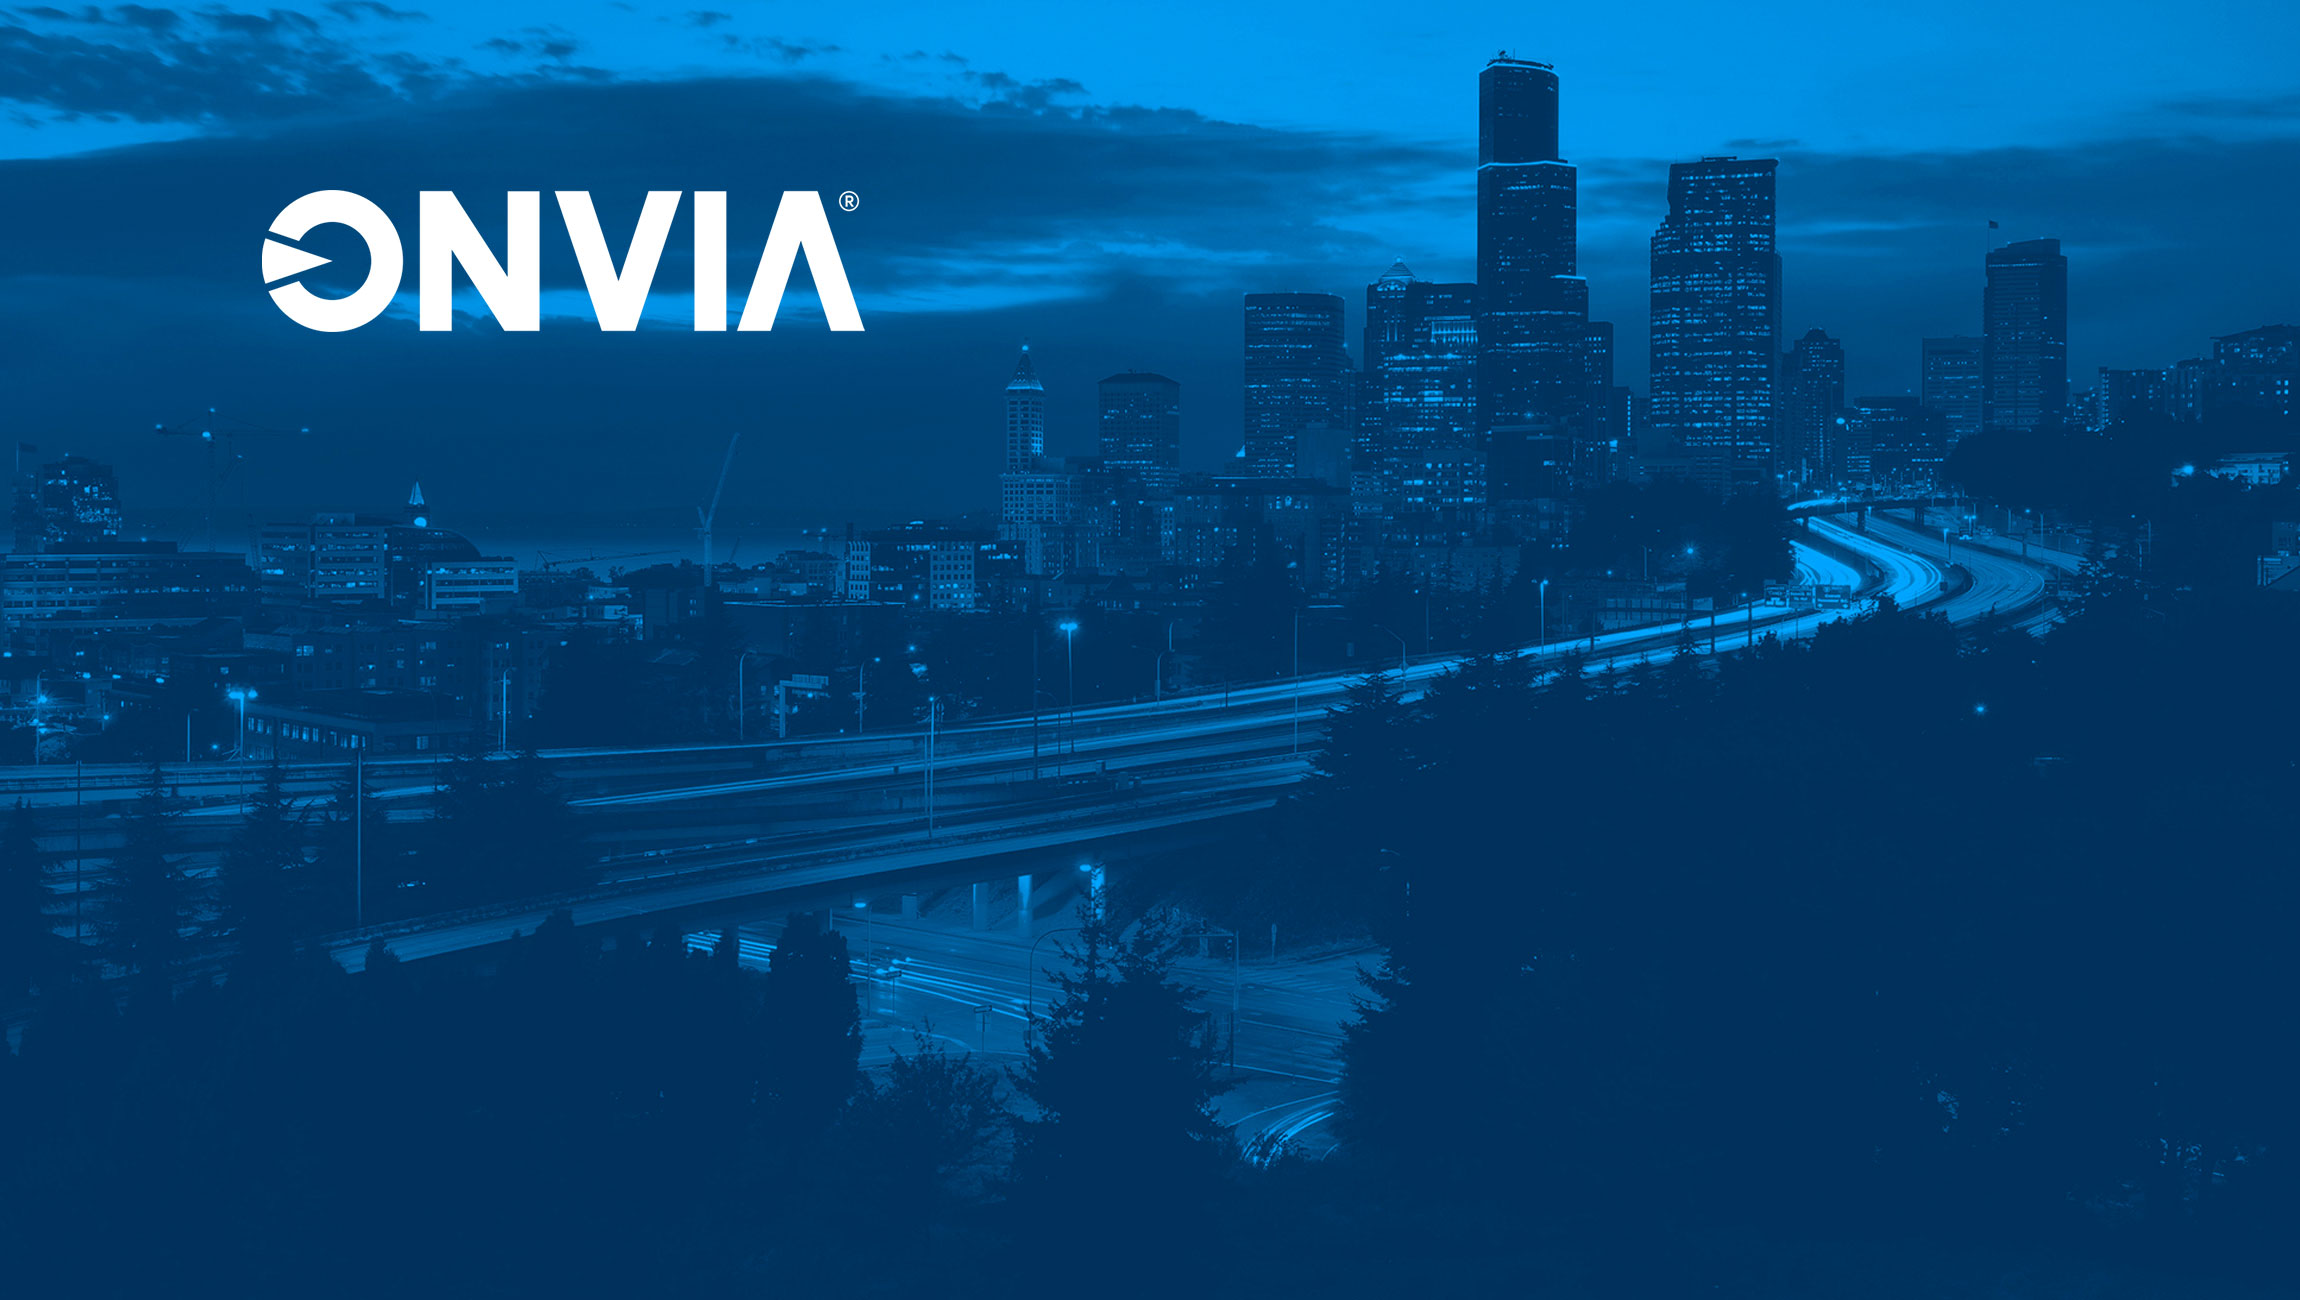 Onvia Exceeds Over 1,000 US Government Agencies Connecting